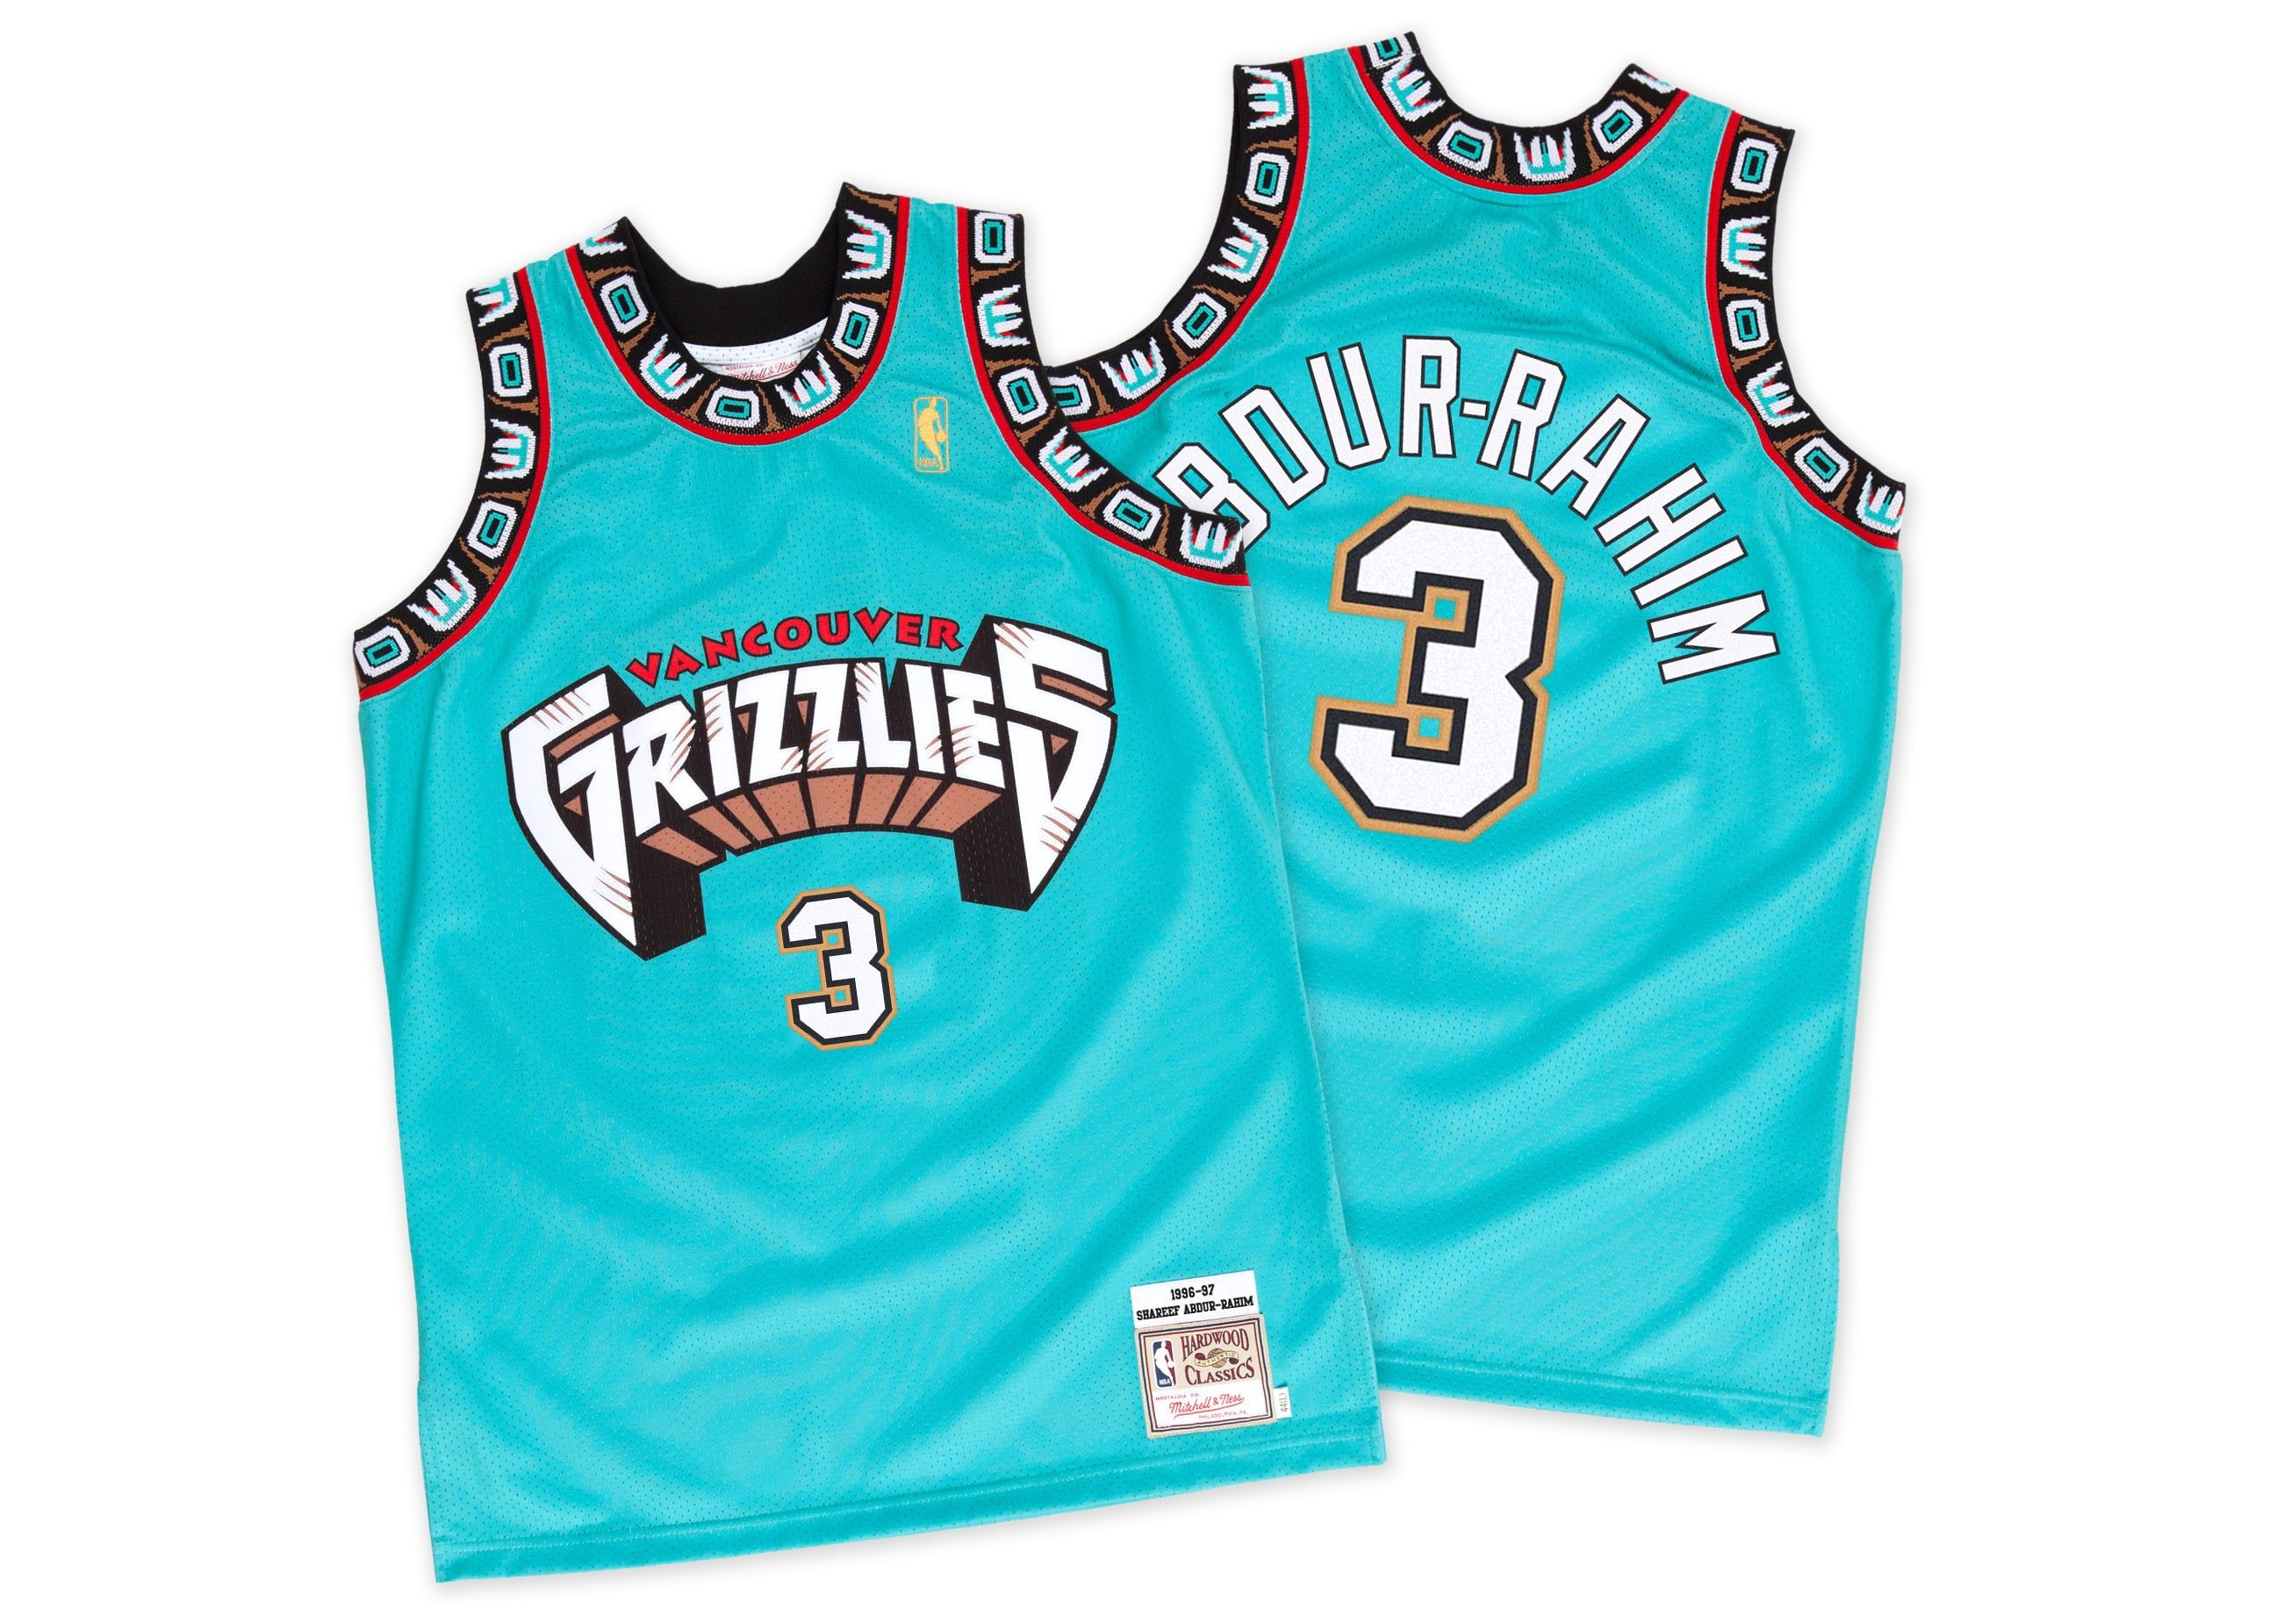 87c639bbe71 ... Green Throwback Swingman Jersey Ray AmatiNBAE via Getty Images Sport  Pinterest Shareef abdur rahim, Nba draft and 1996 nba Memphis Grizzlies 3  ...